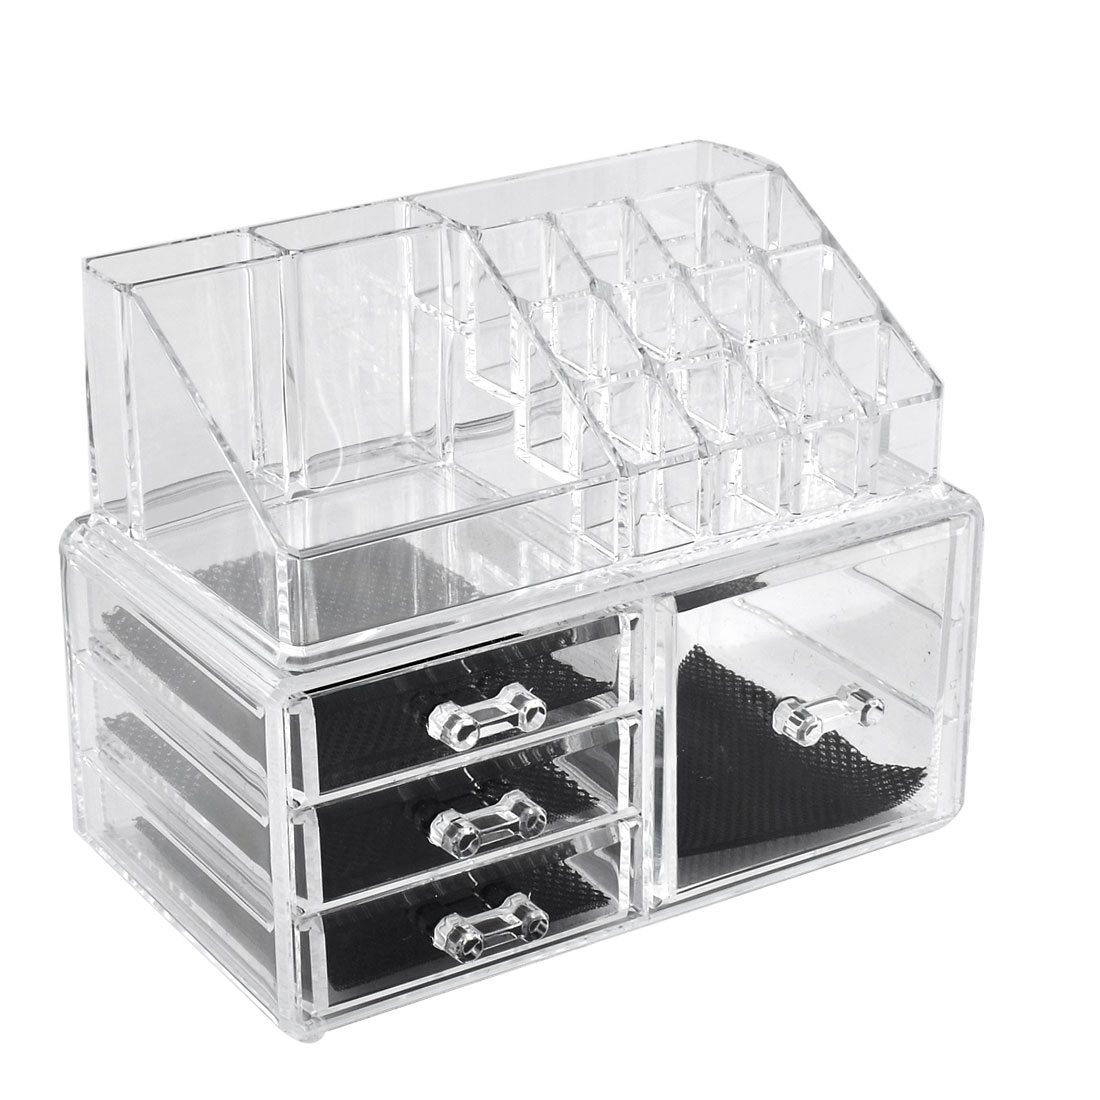 Home Acrylic Jewelry Makeup Dressing Case Organizer Display Box Set 2 in 1